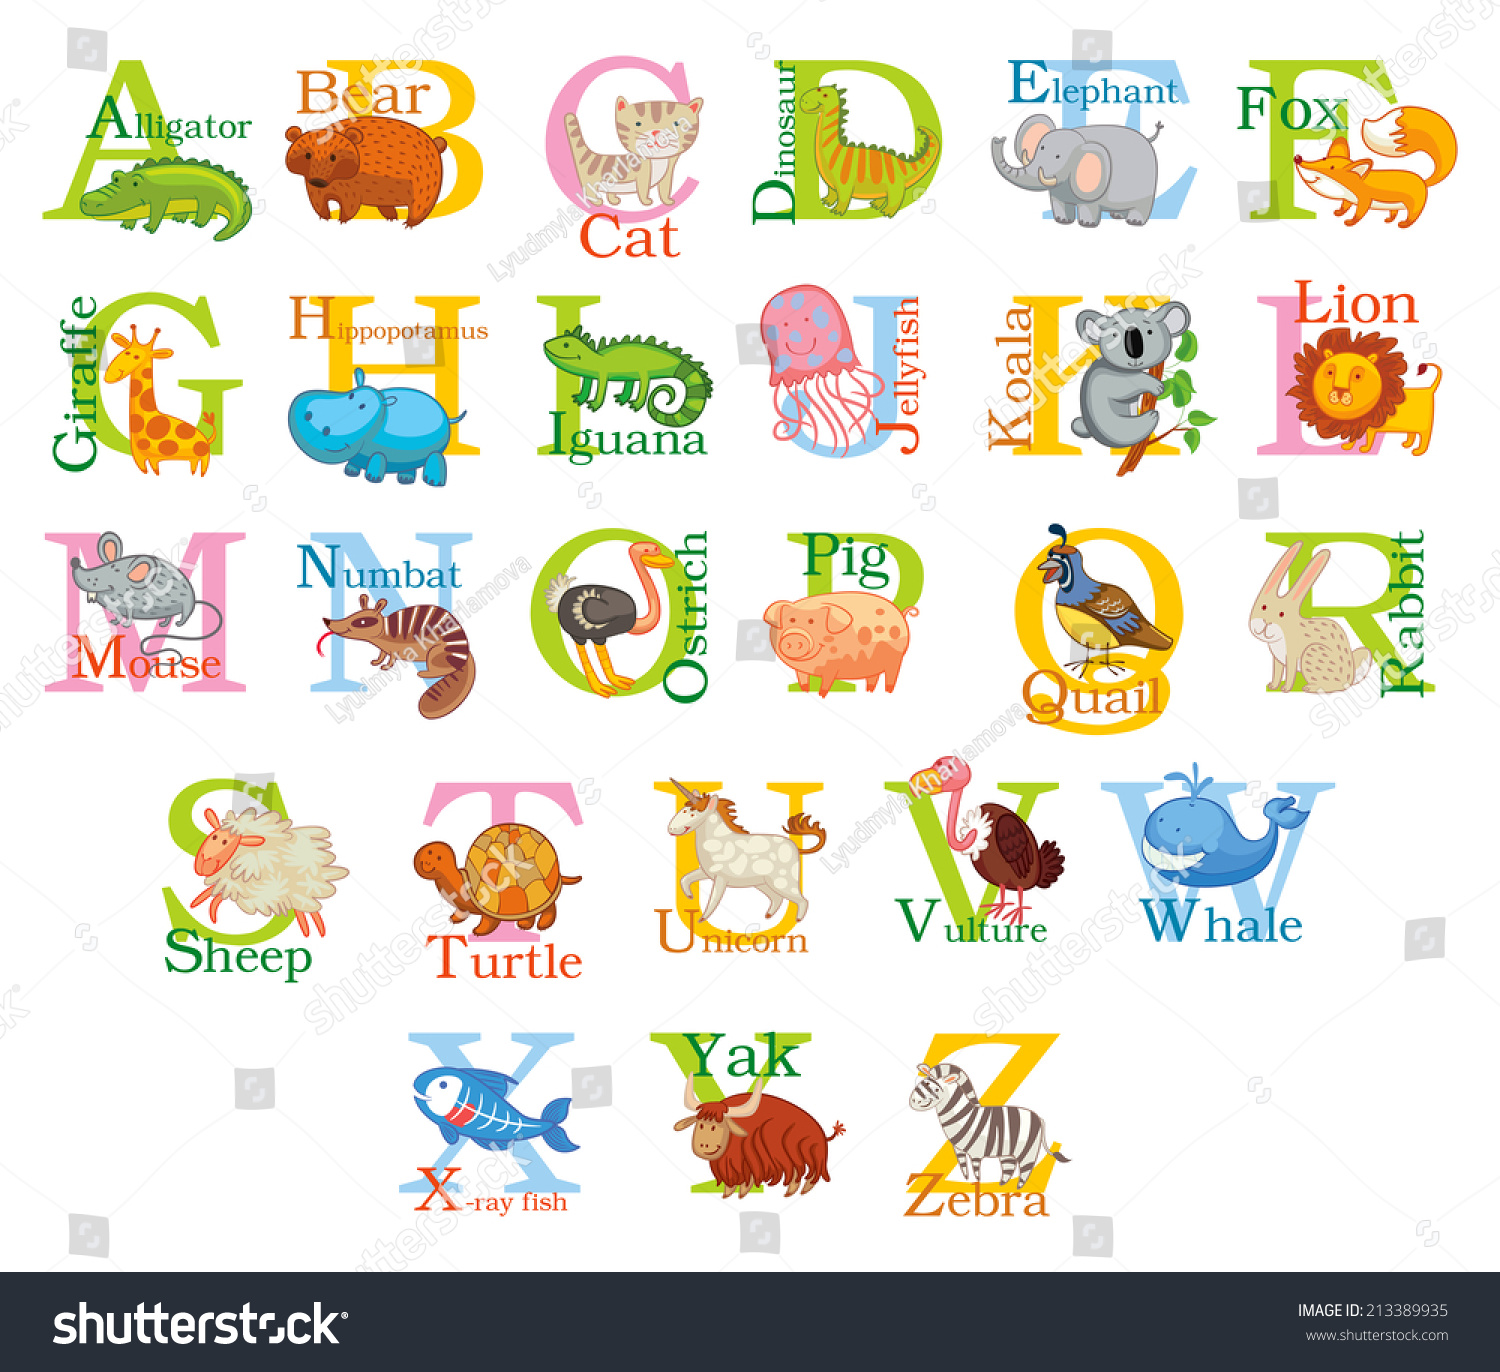 4 Letter Cartoon Characters : Cute animal alphabet funny cartoon character stock vector